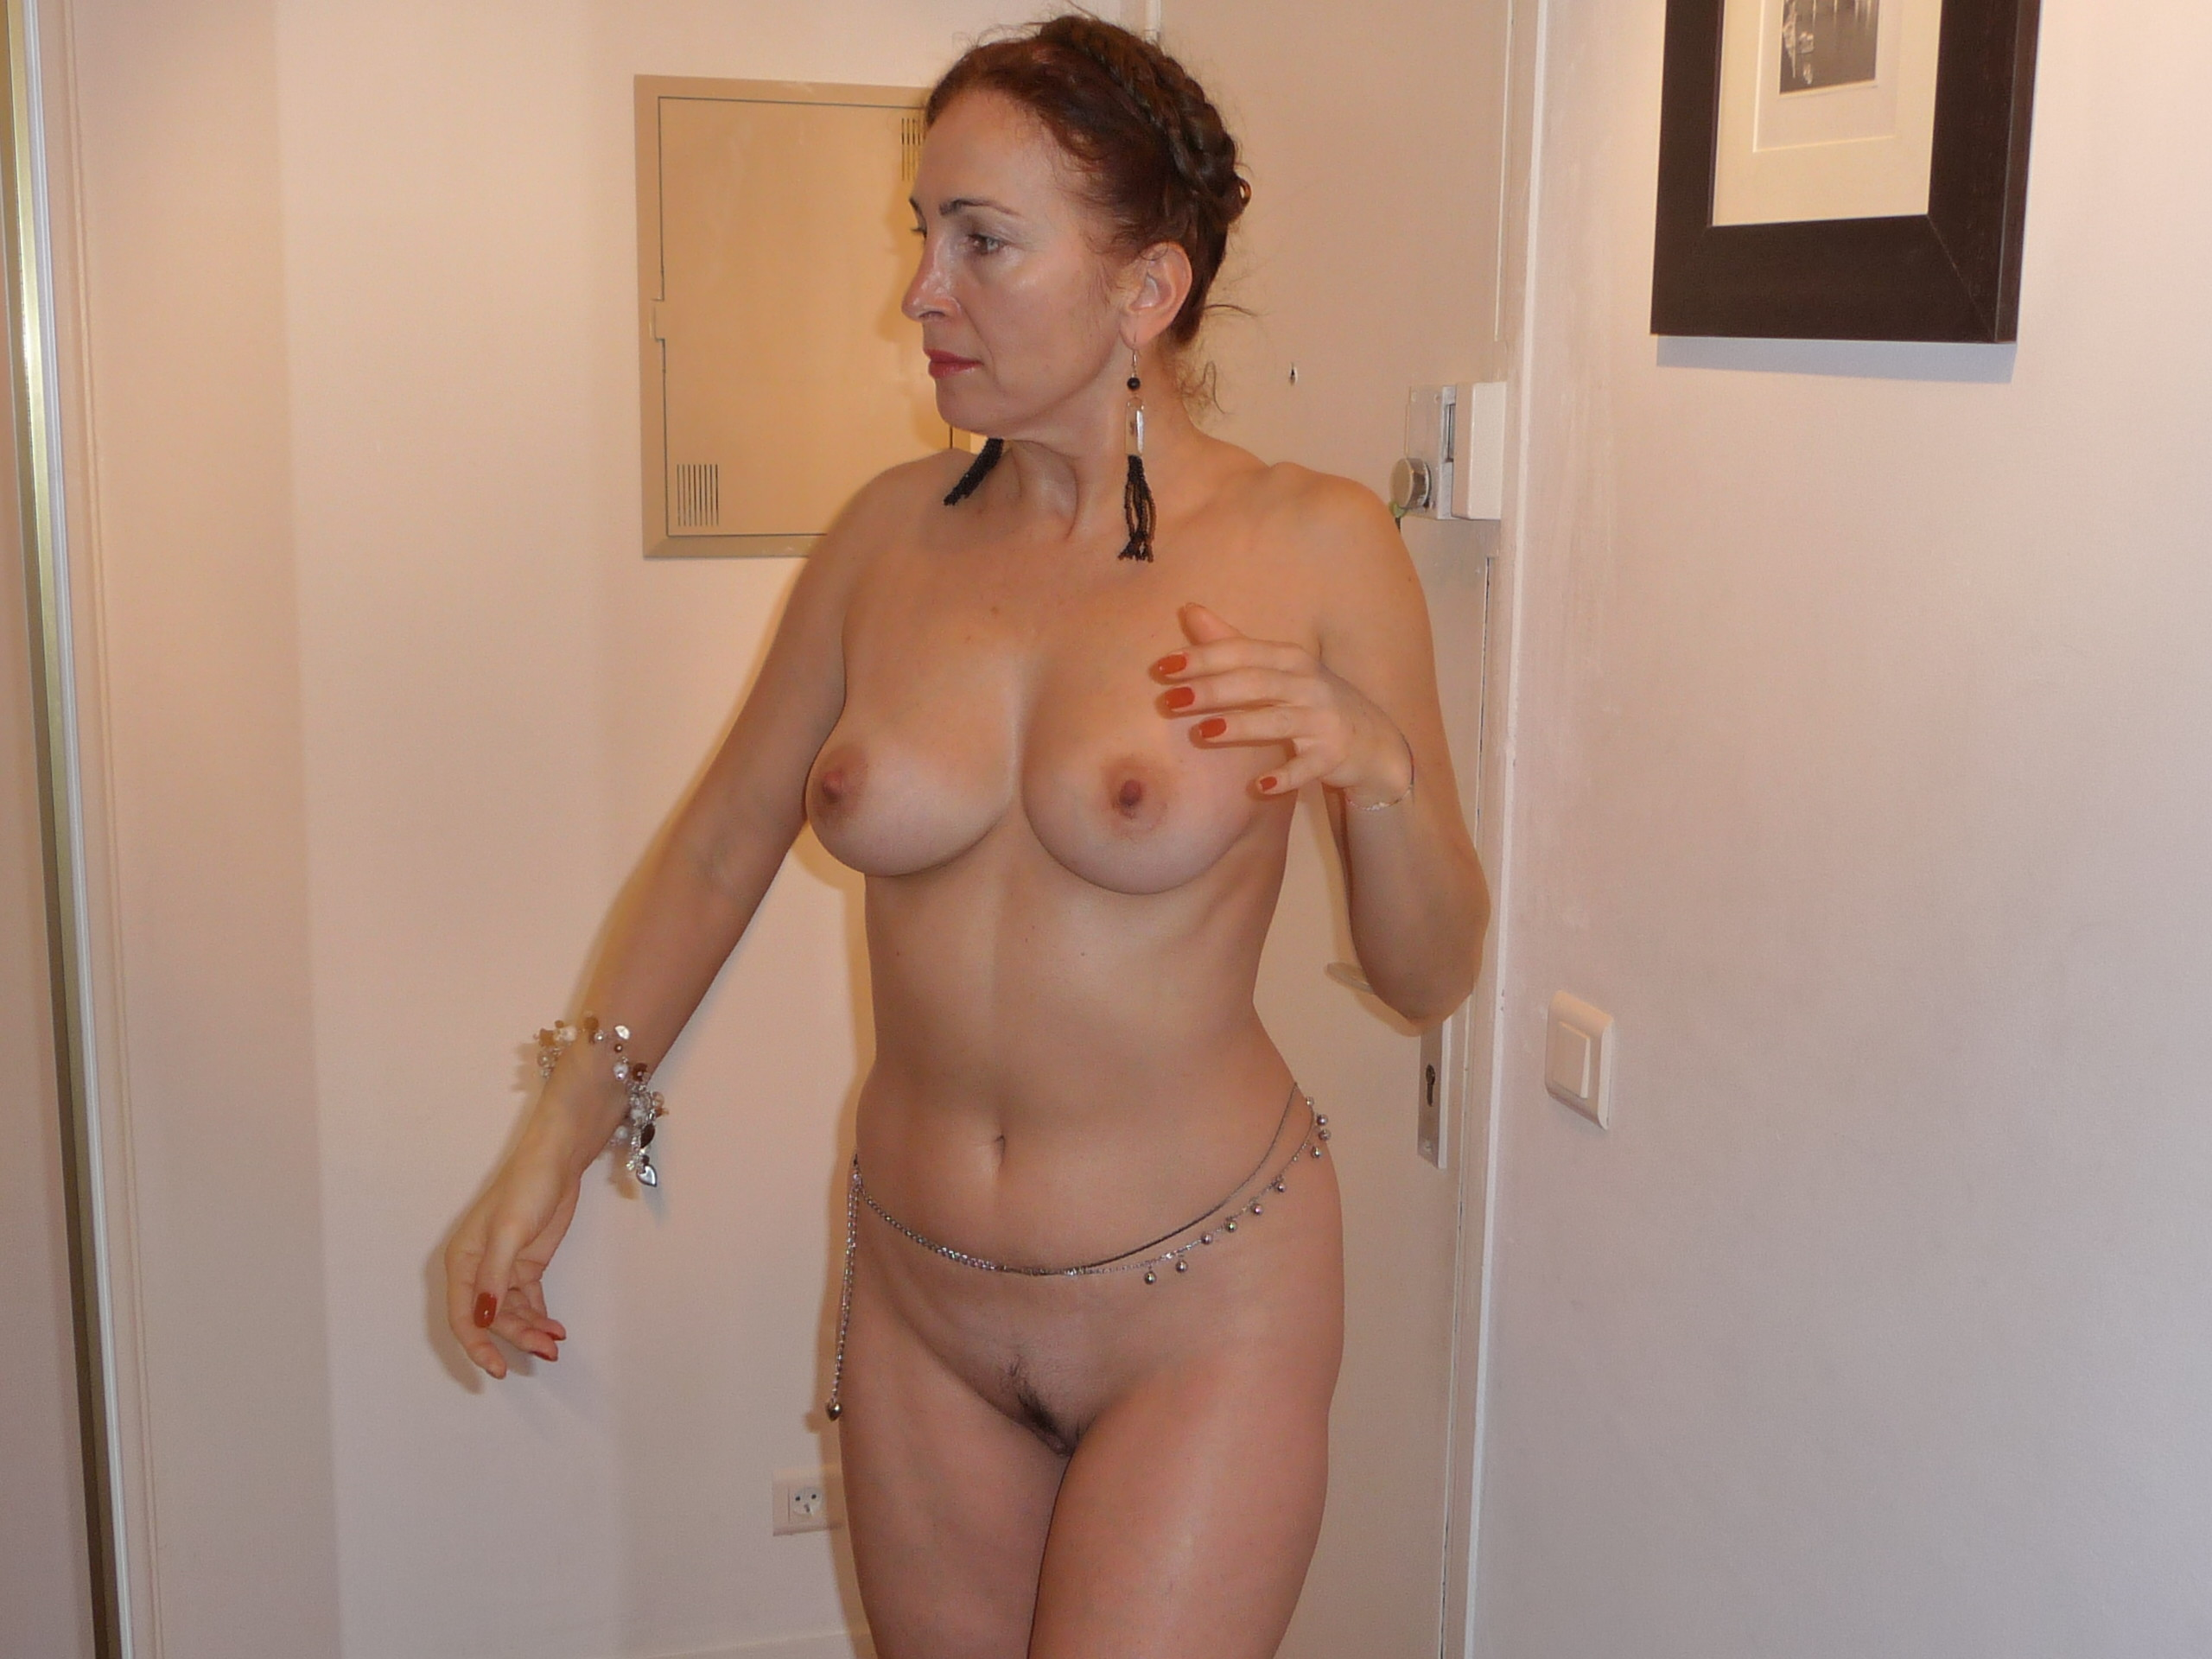 amateur-naked-women-galleries-candid-ex-naked